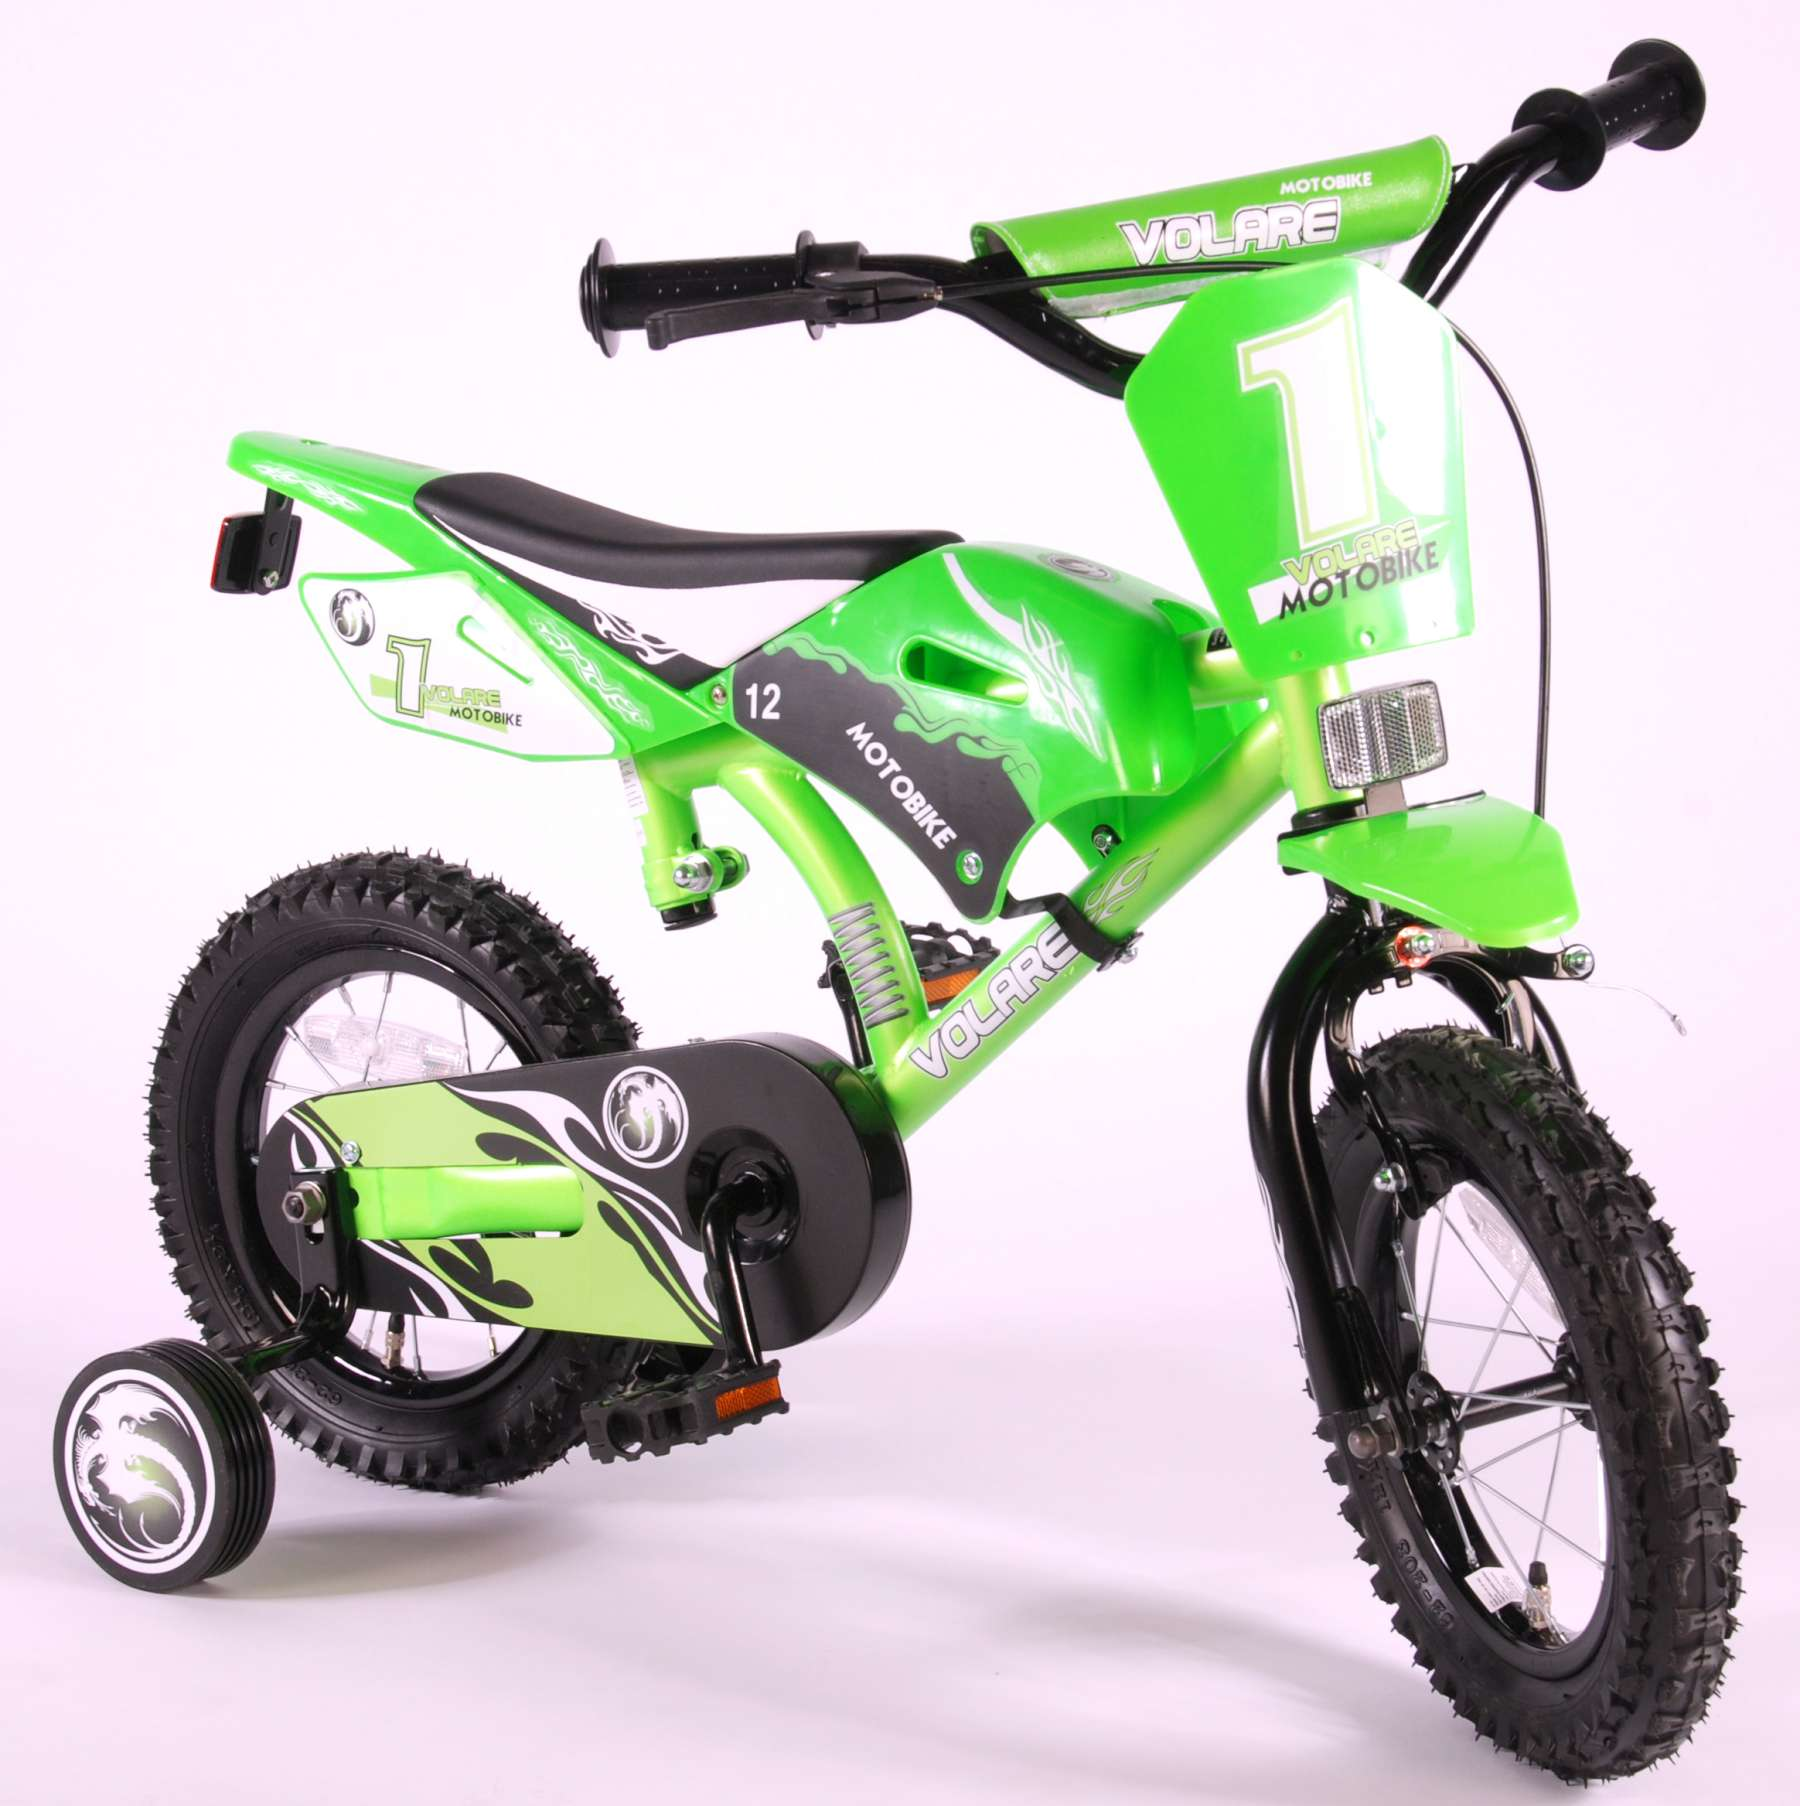 Boys 20 Inch Bike >> Volare Motobike Green 12 inch boys bicycle